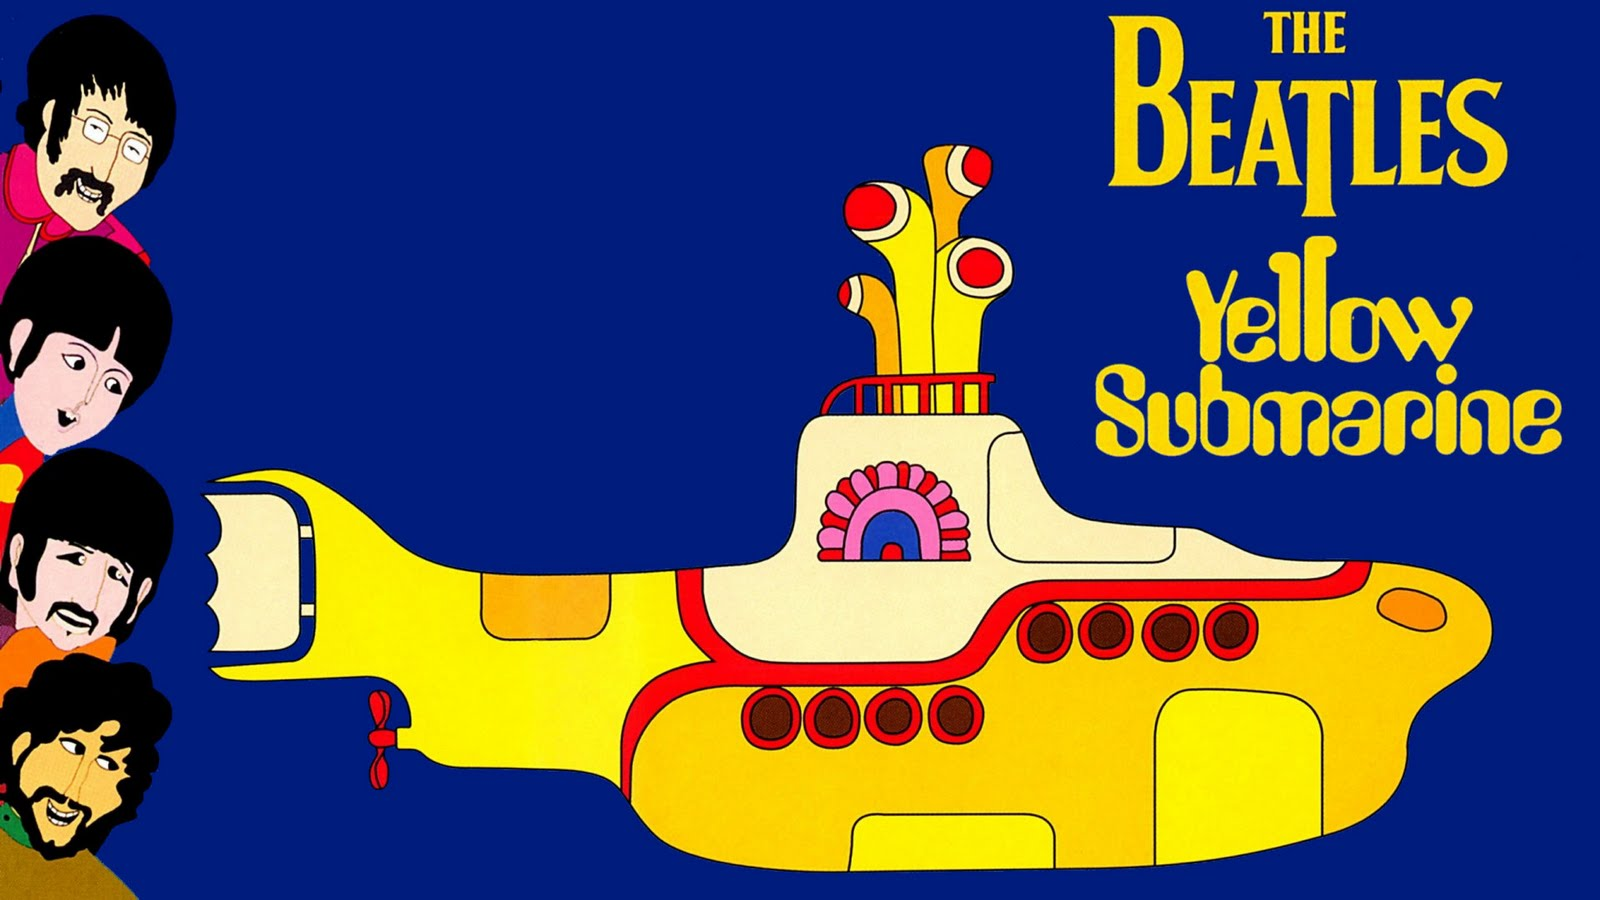 Обои The beatles, sgt. peppers lonely hearts club band, yellow submarine. Музыка foto 17